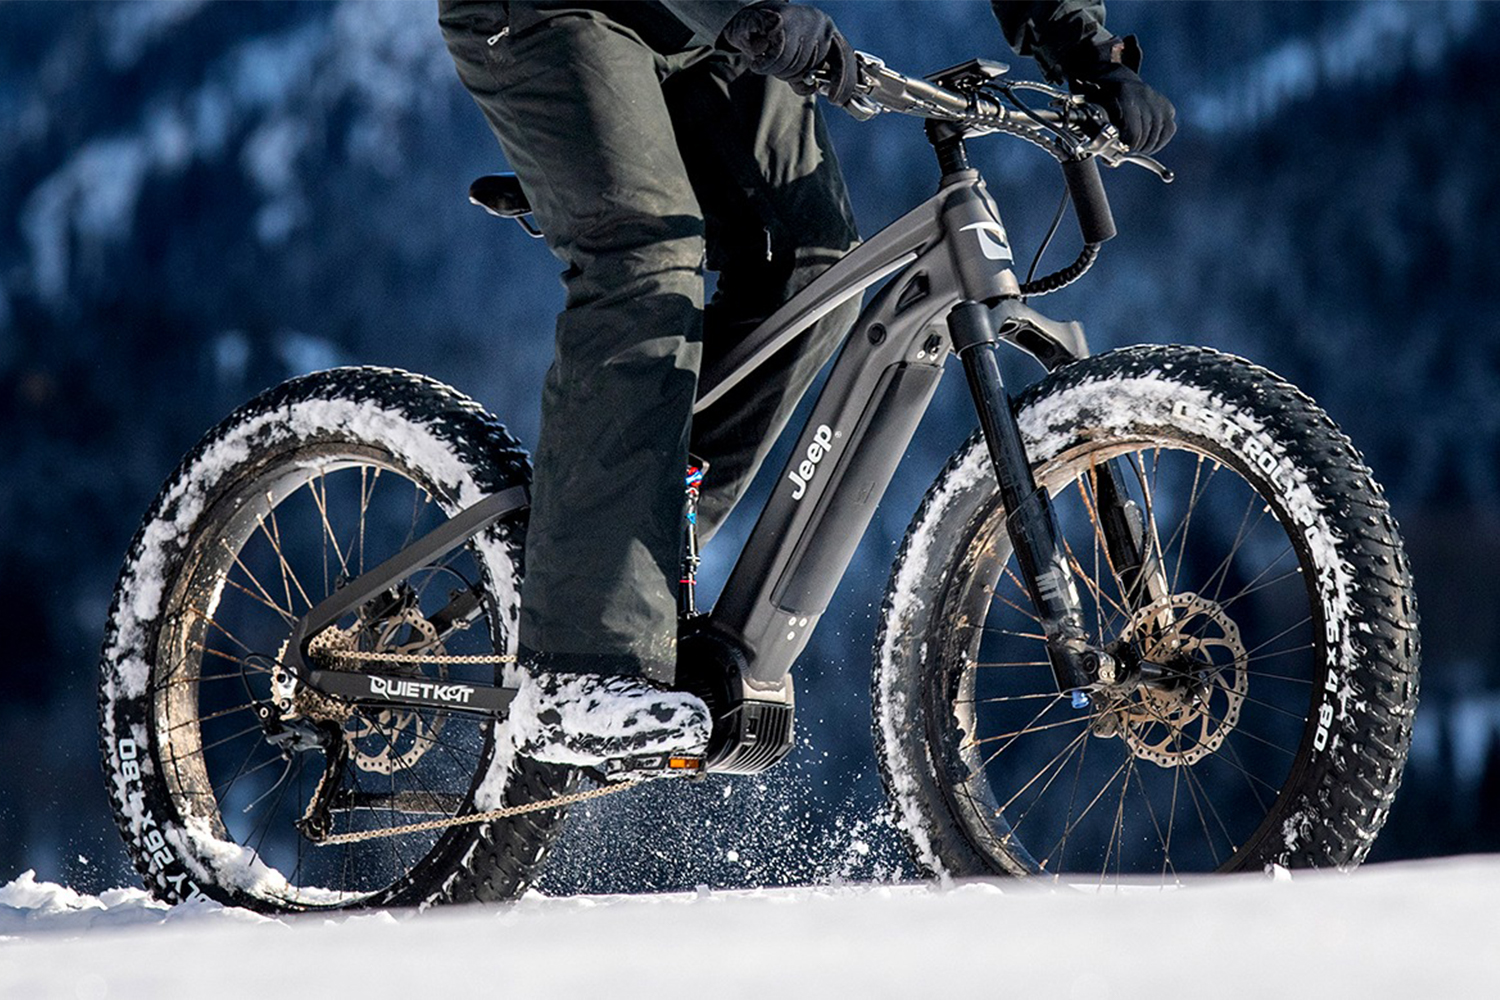 Jeep QuietKat e-Bike